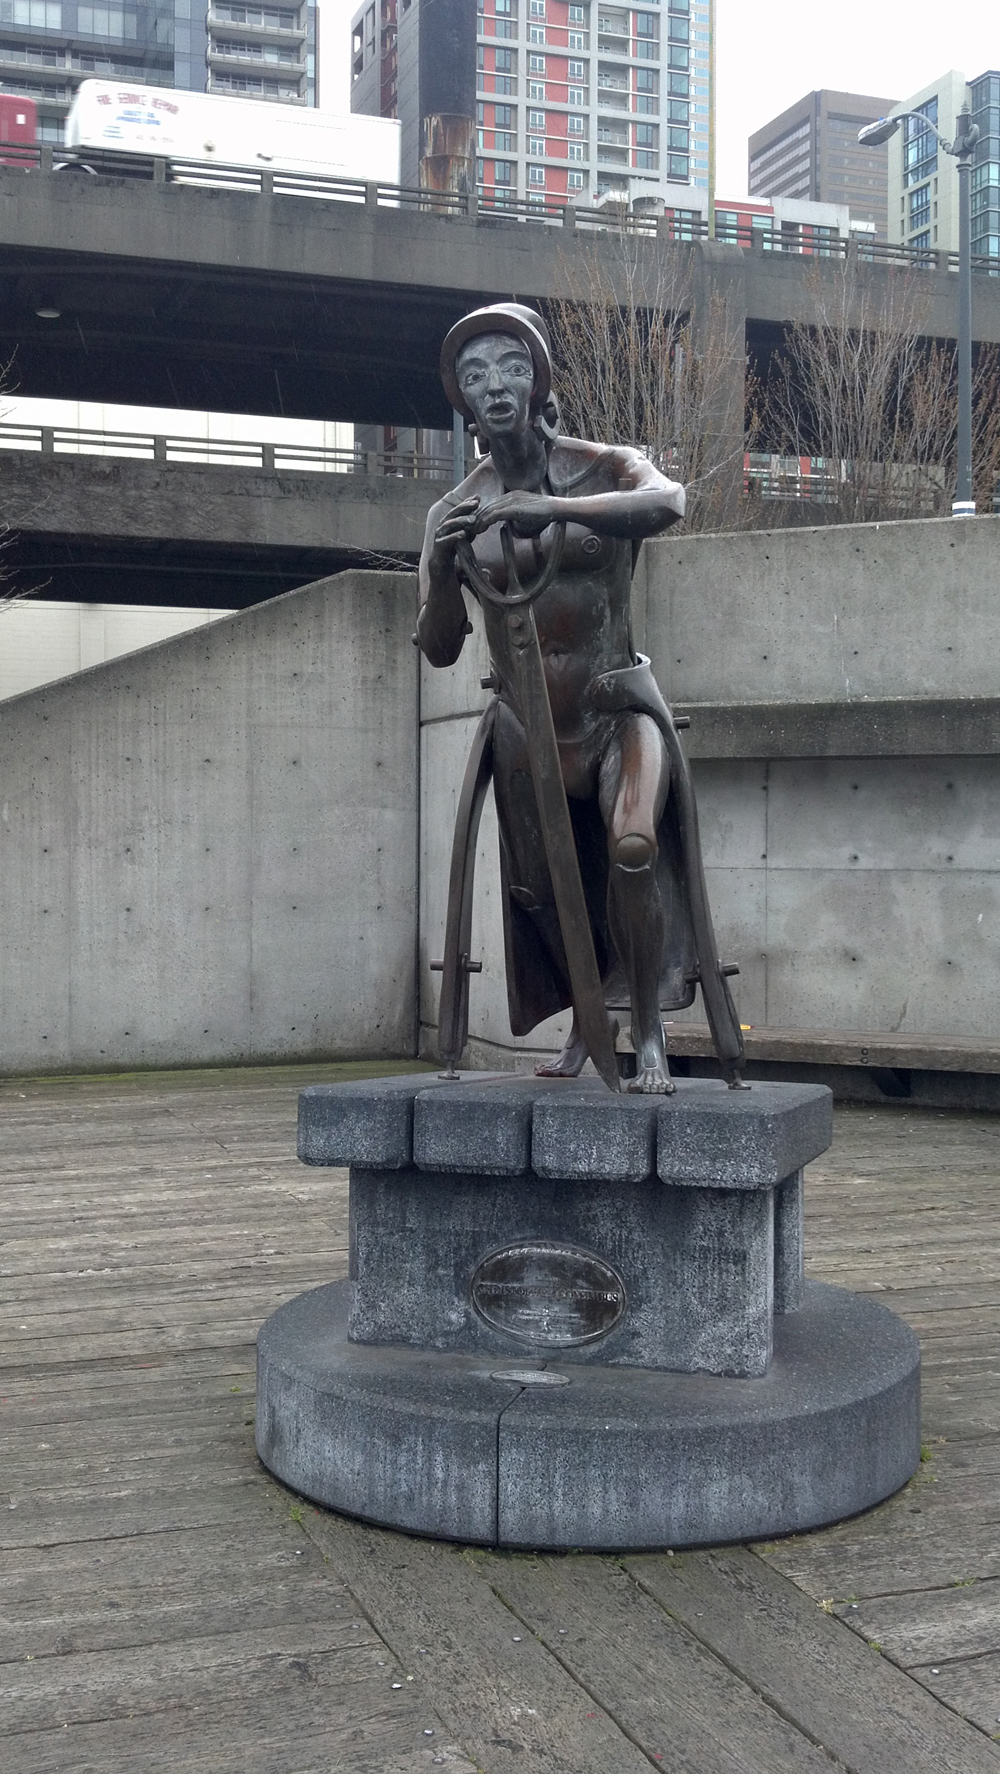 This statue of Christopher Columbus in Waterfront Park was dedicated in 1978. The City of Seattle tends to cover it near Columbus Day to protect from vandalism.